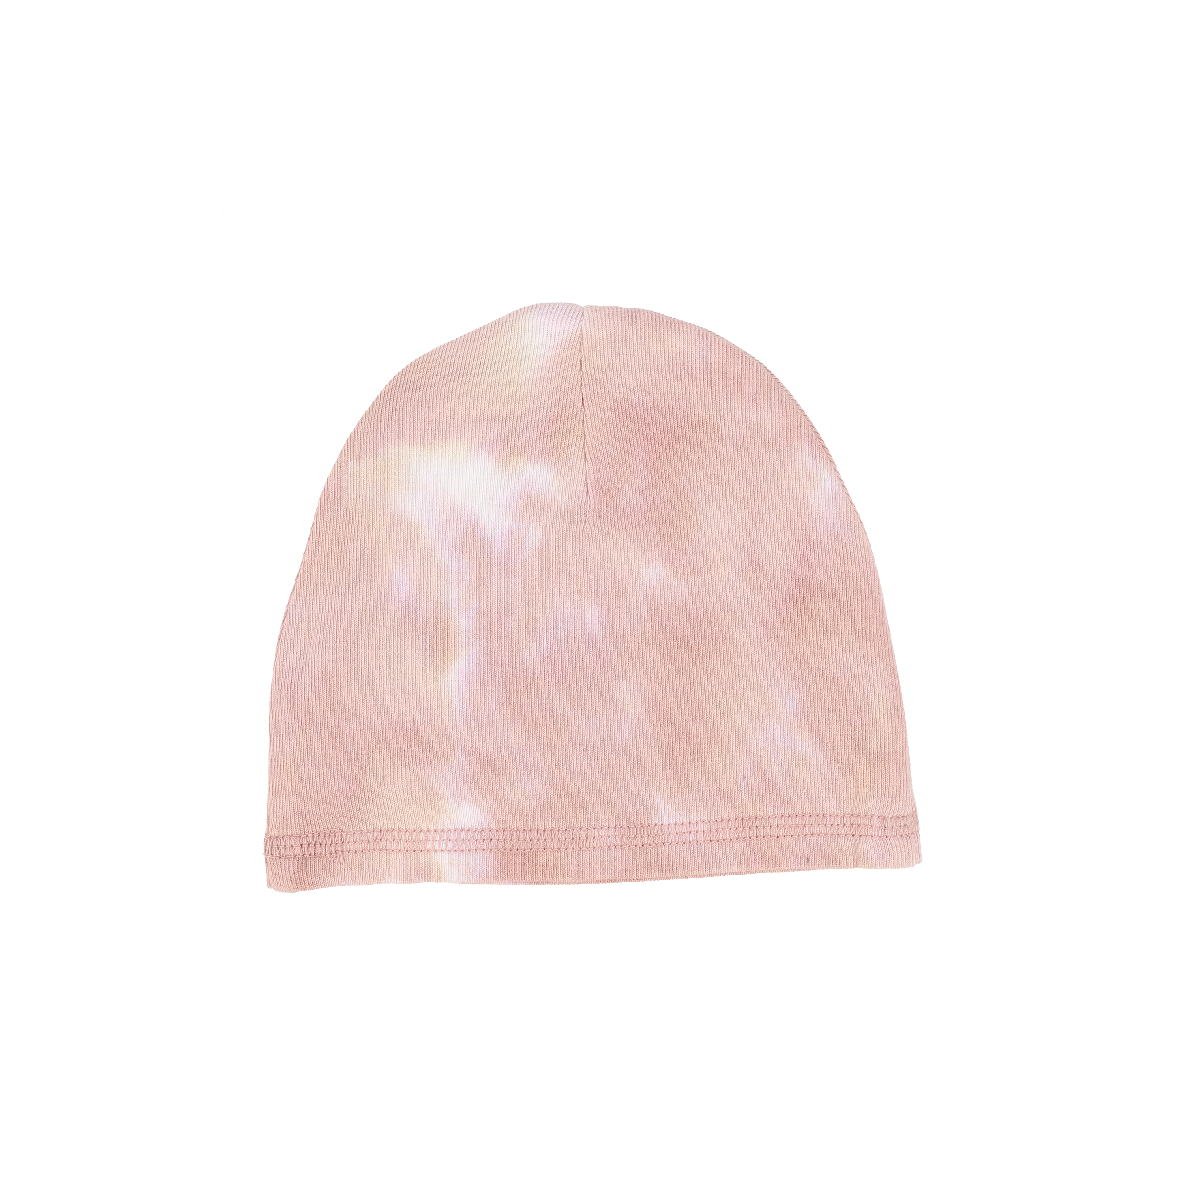 Analogie Blush Watercolor Beanie